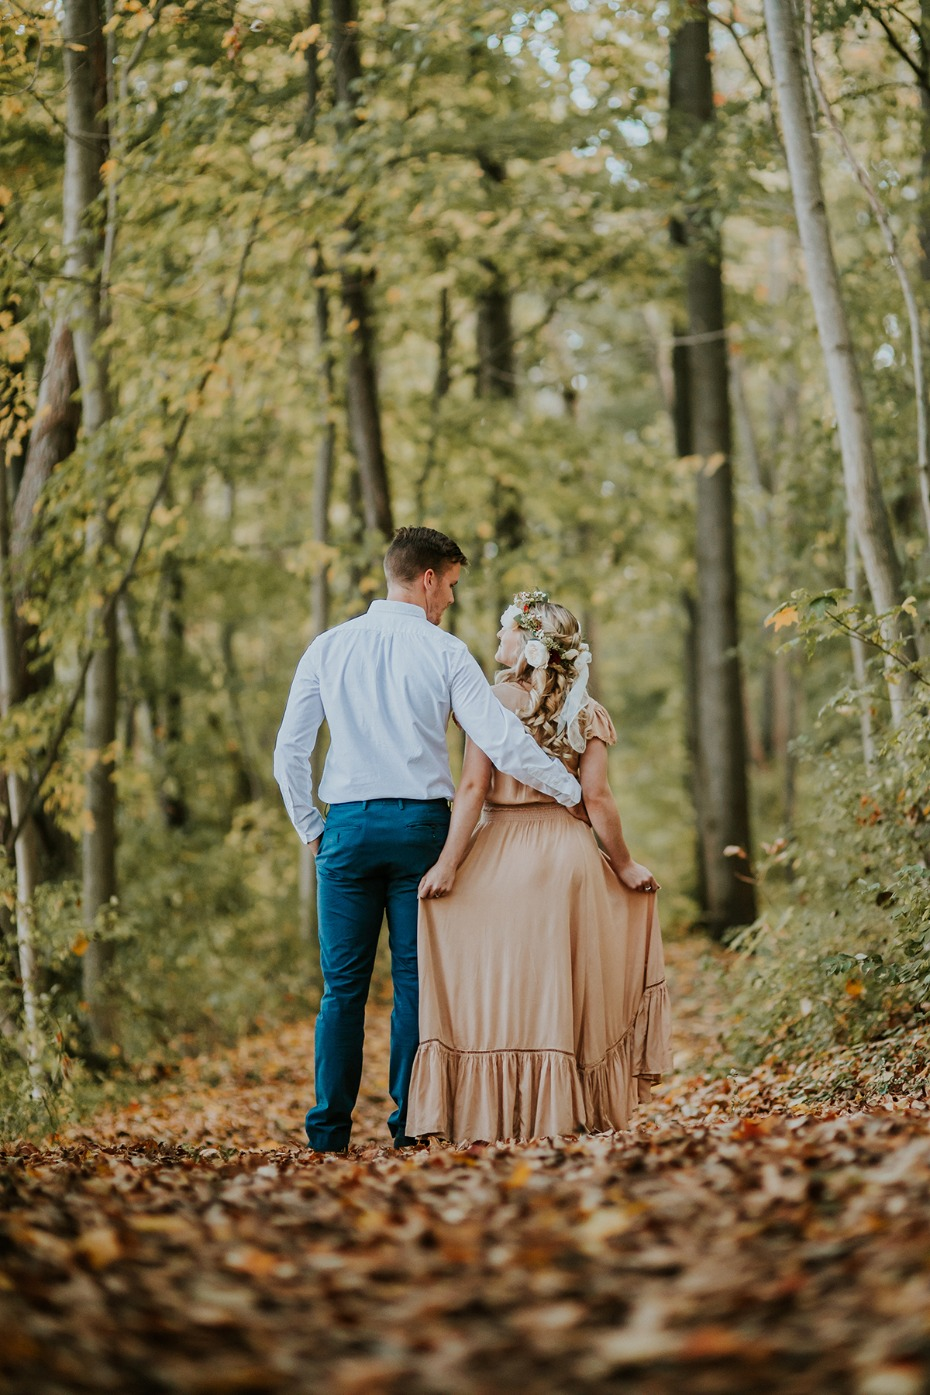 sweet engagement photo ideas for the fall